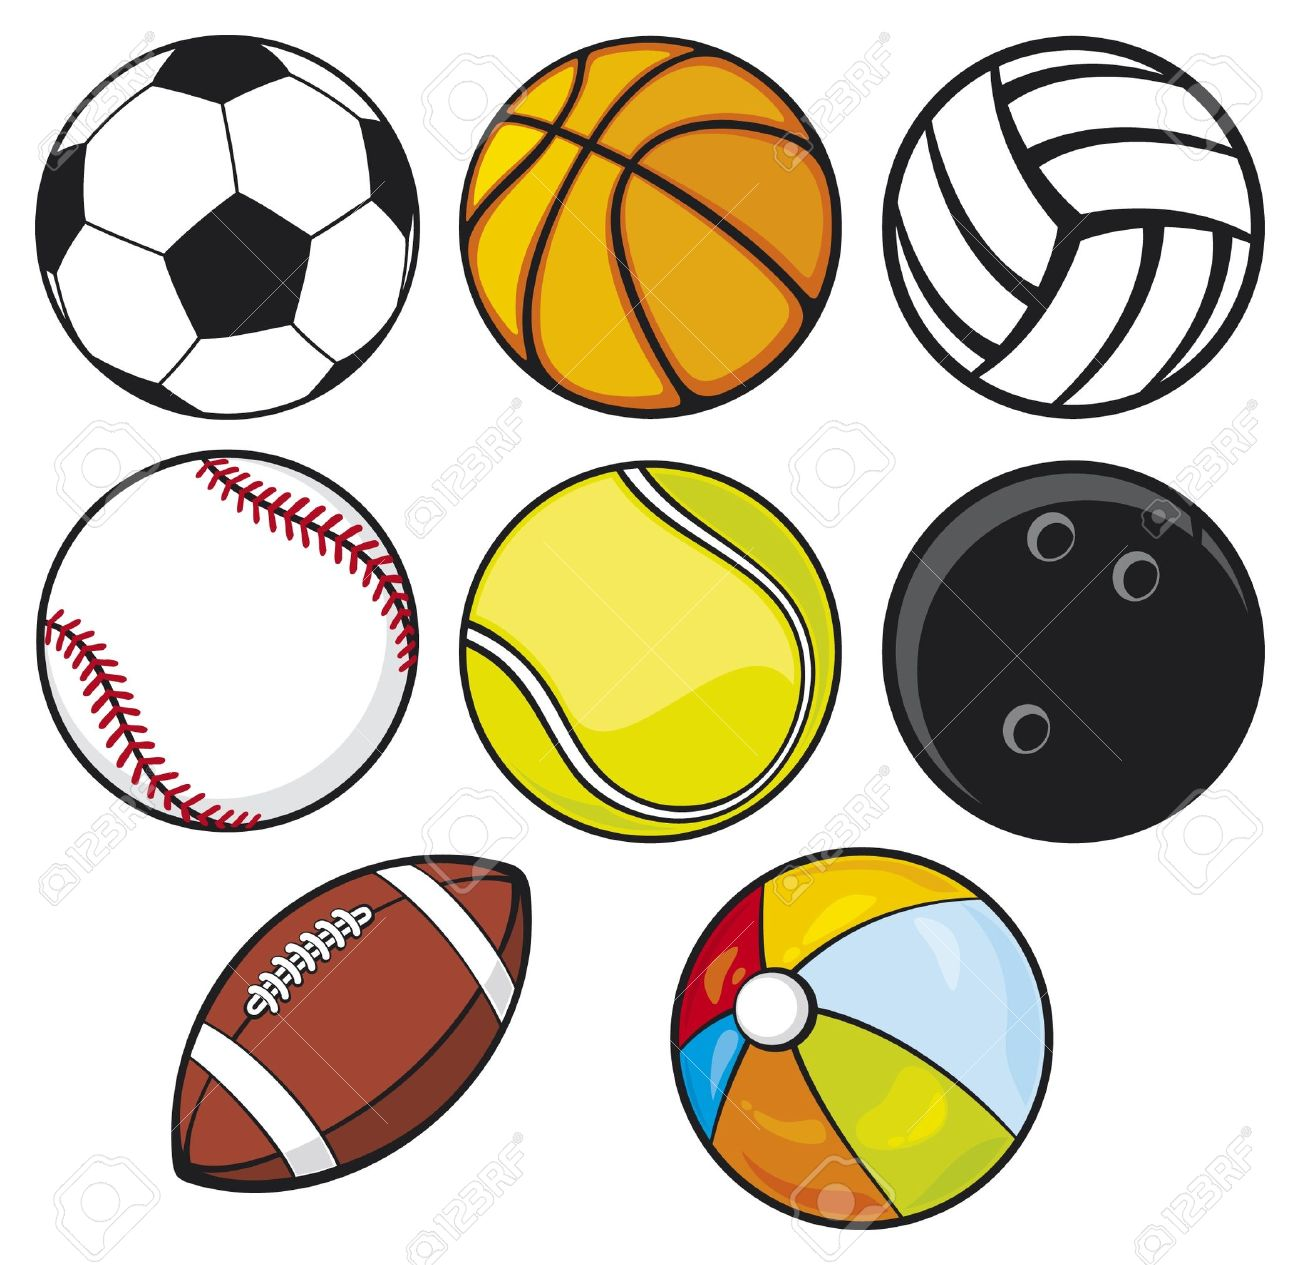 1300x1265 Tennis Ball Clipart Beach Tennis